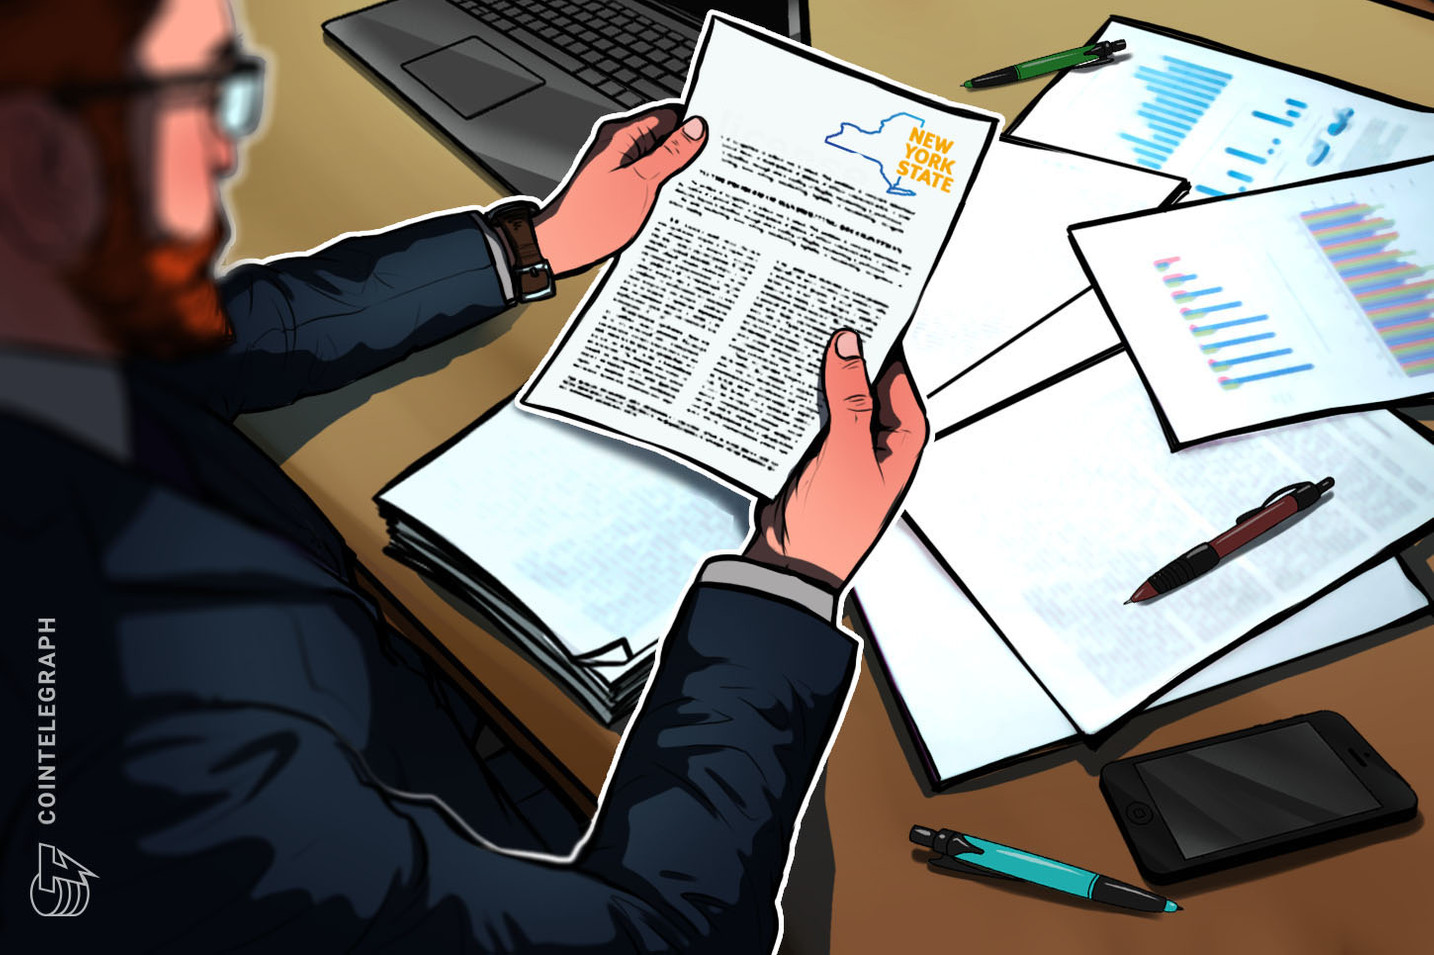 New York Crypto Regulator Adds Silk Road Investigator as General Counsel